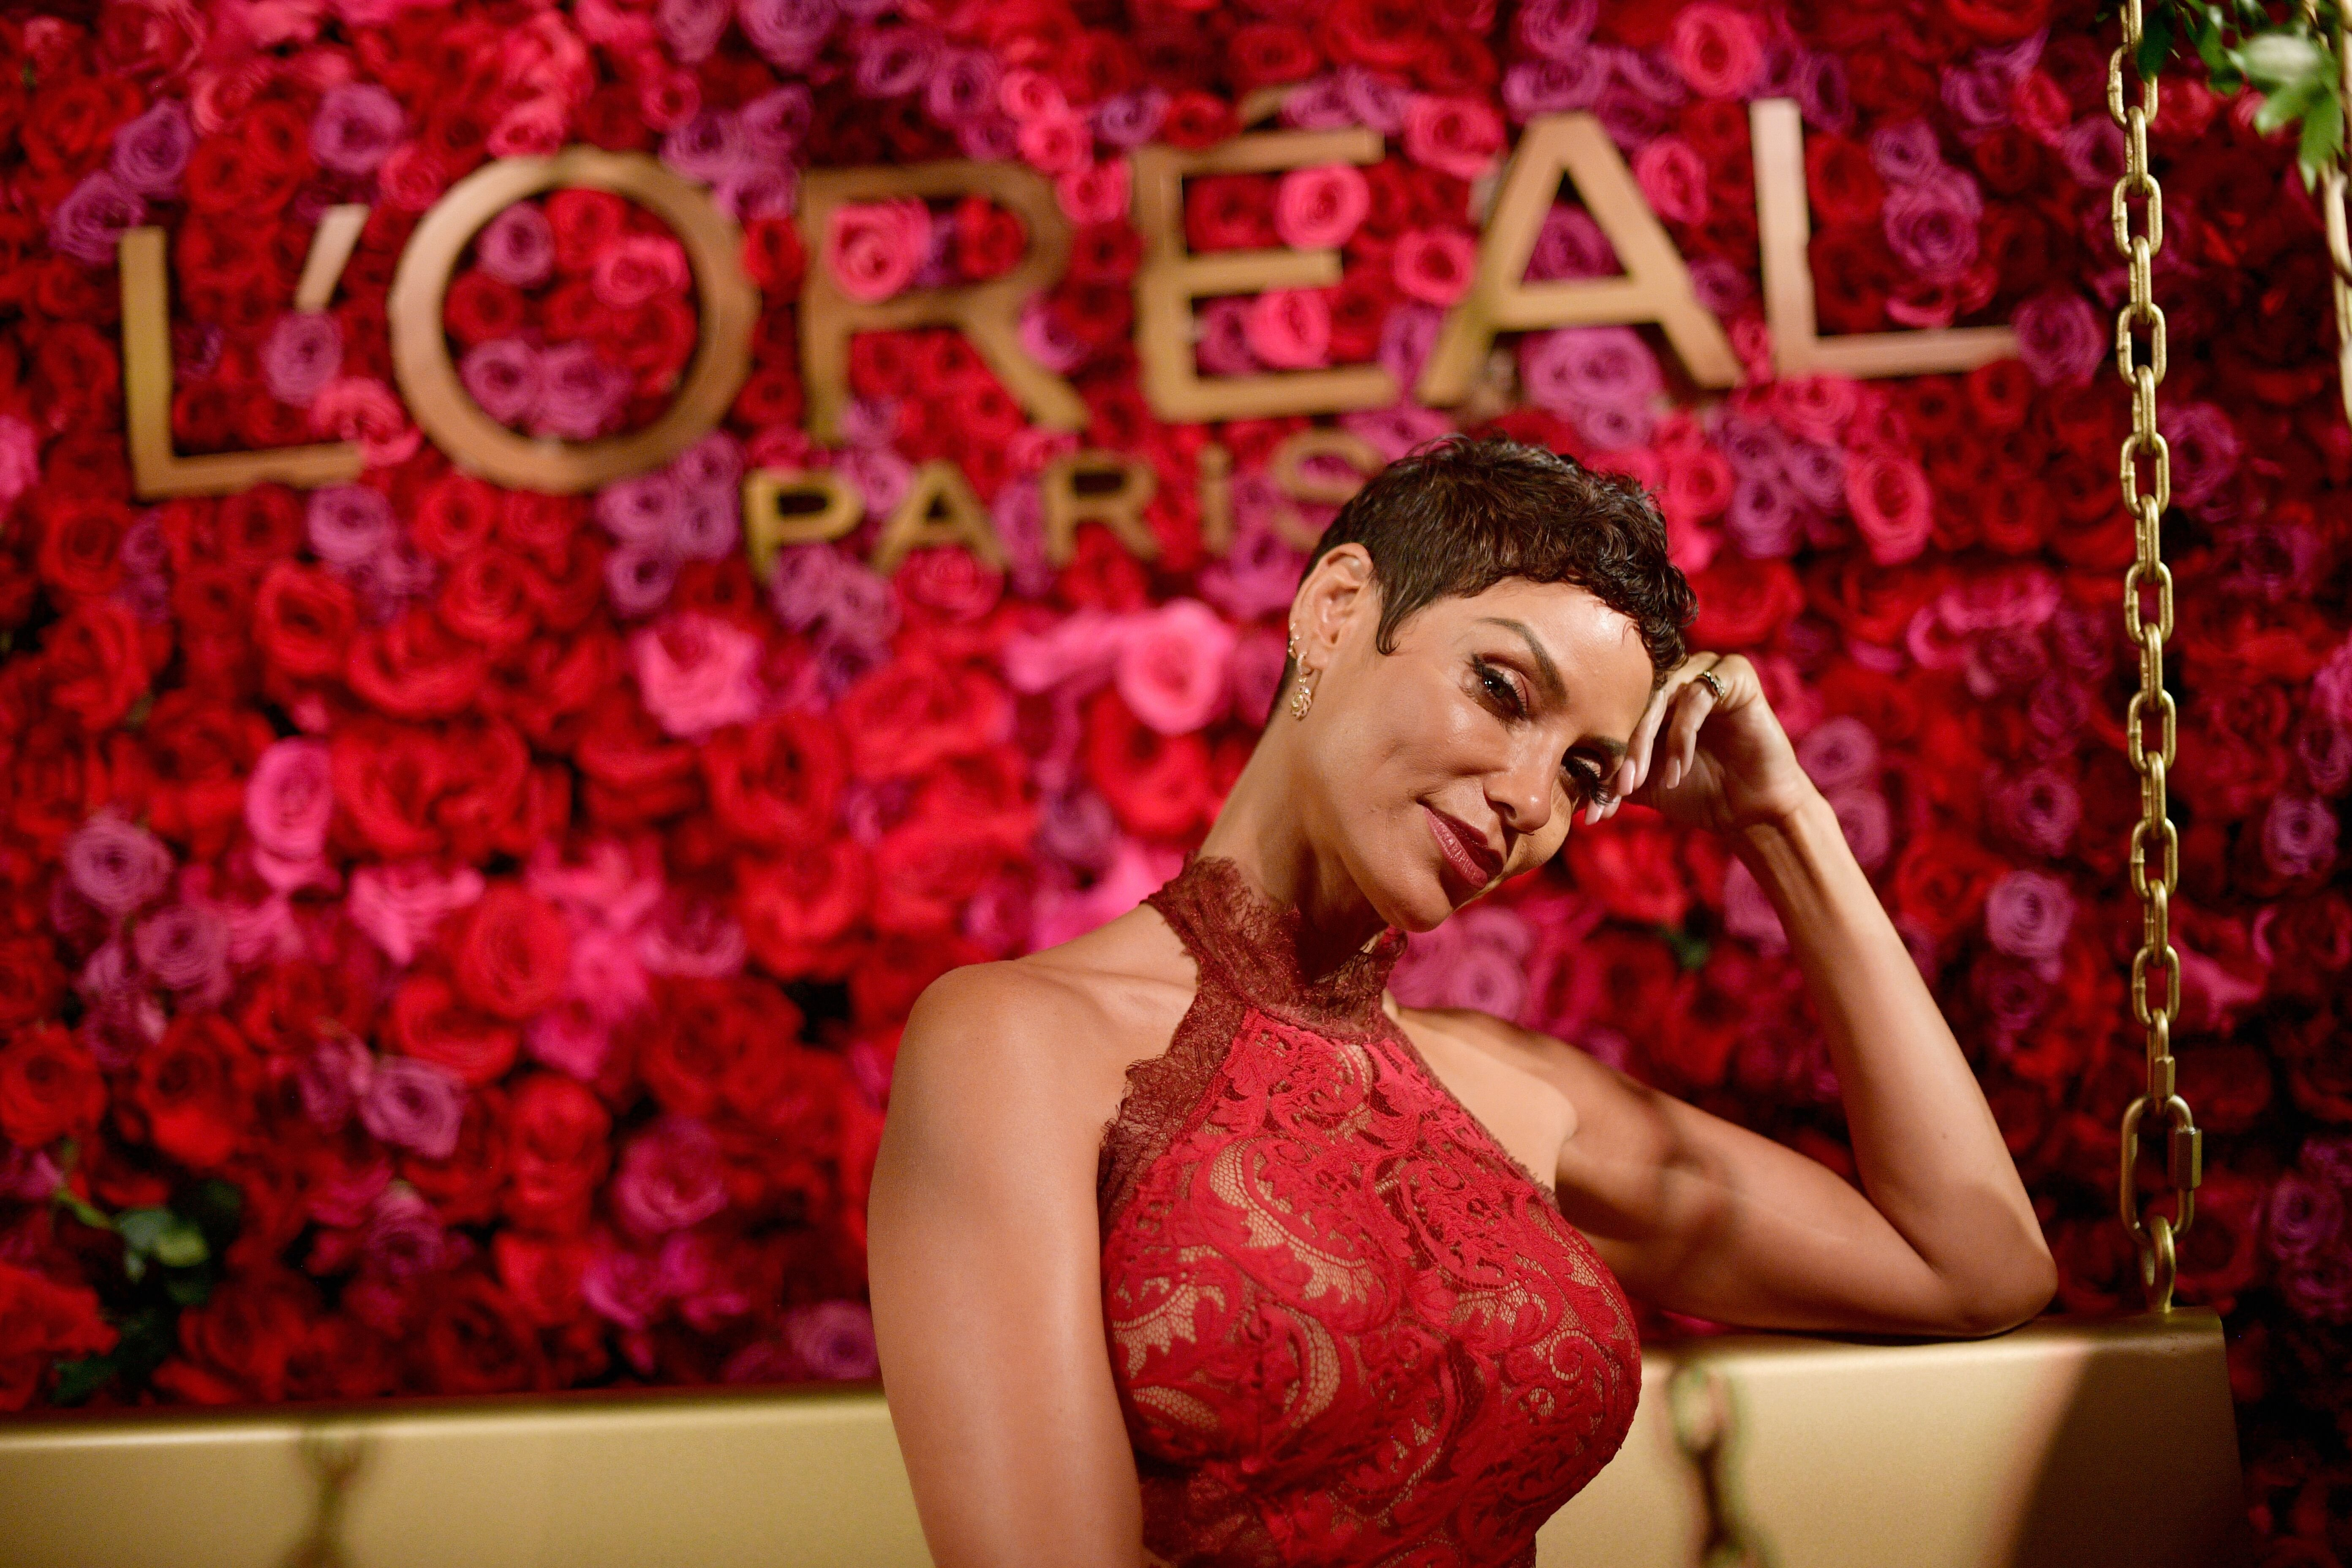 Nicole Mitchell Murphy attends the 2018 Pre-Emmy Party hosted by Entertainment Weekly and L'Oreal Paris at Sunset Tower on September 15, 2018 in Los Angeles, California. | Source: Getty Images